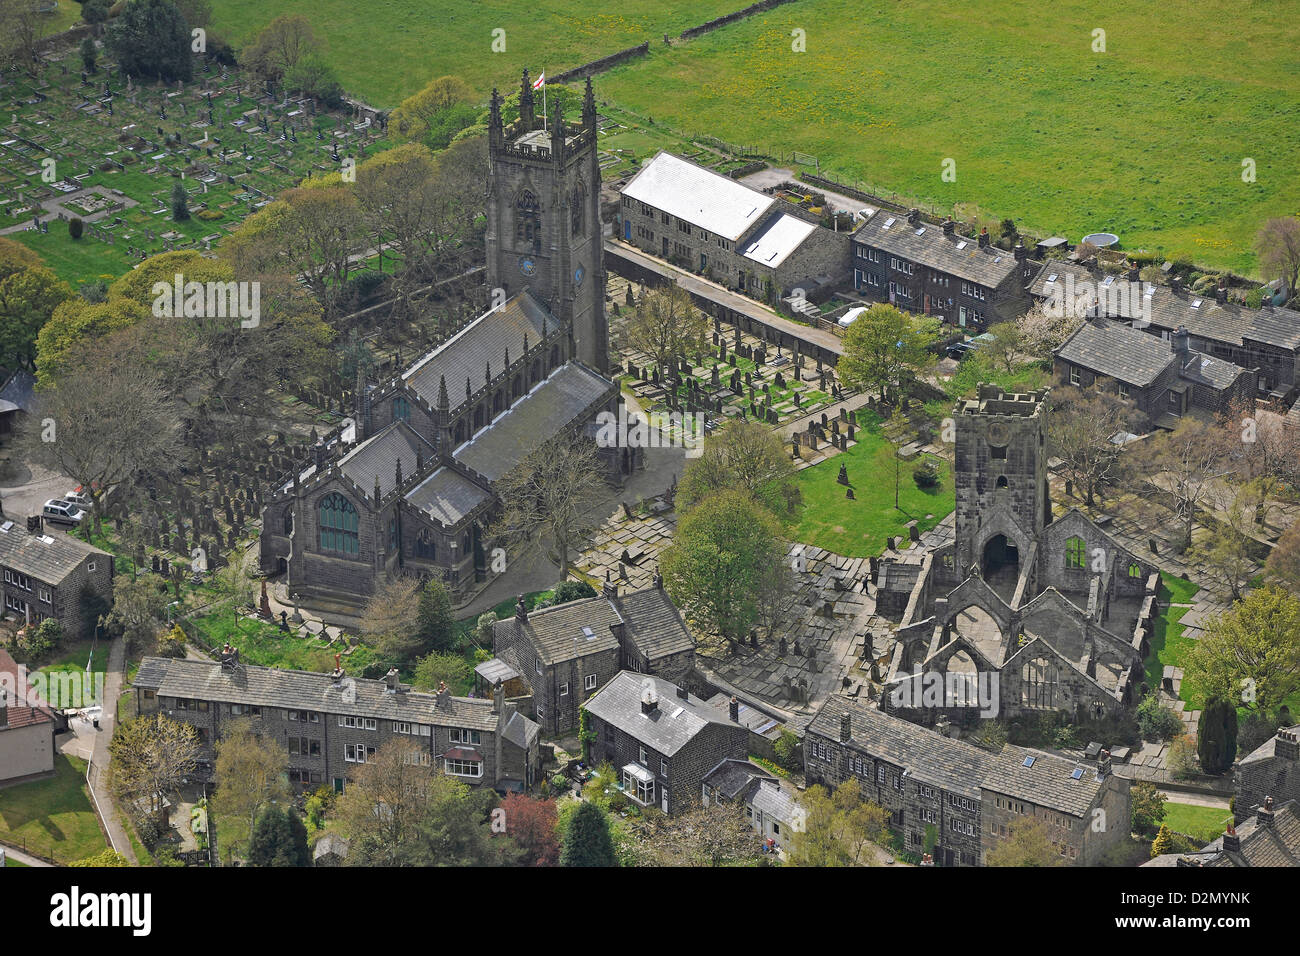 Aerial photograph of Hebden Bridge West Yorkshire - Stock Image